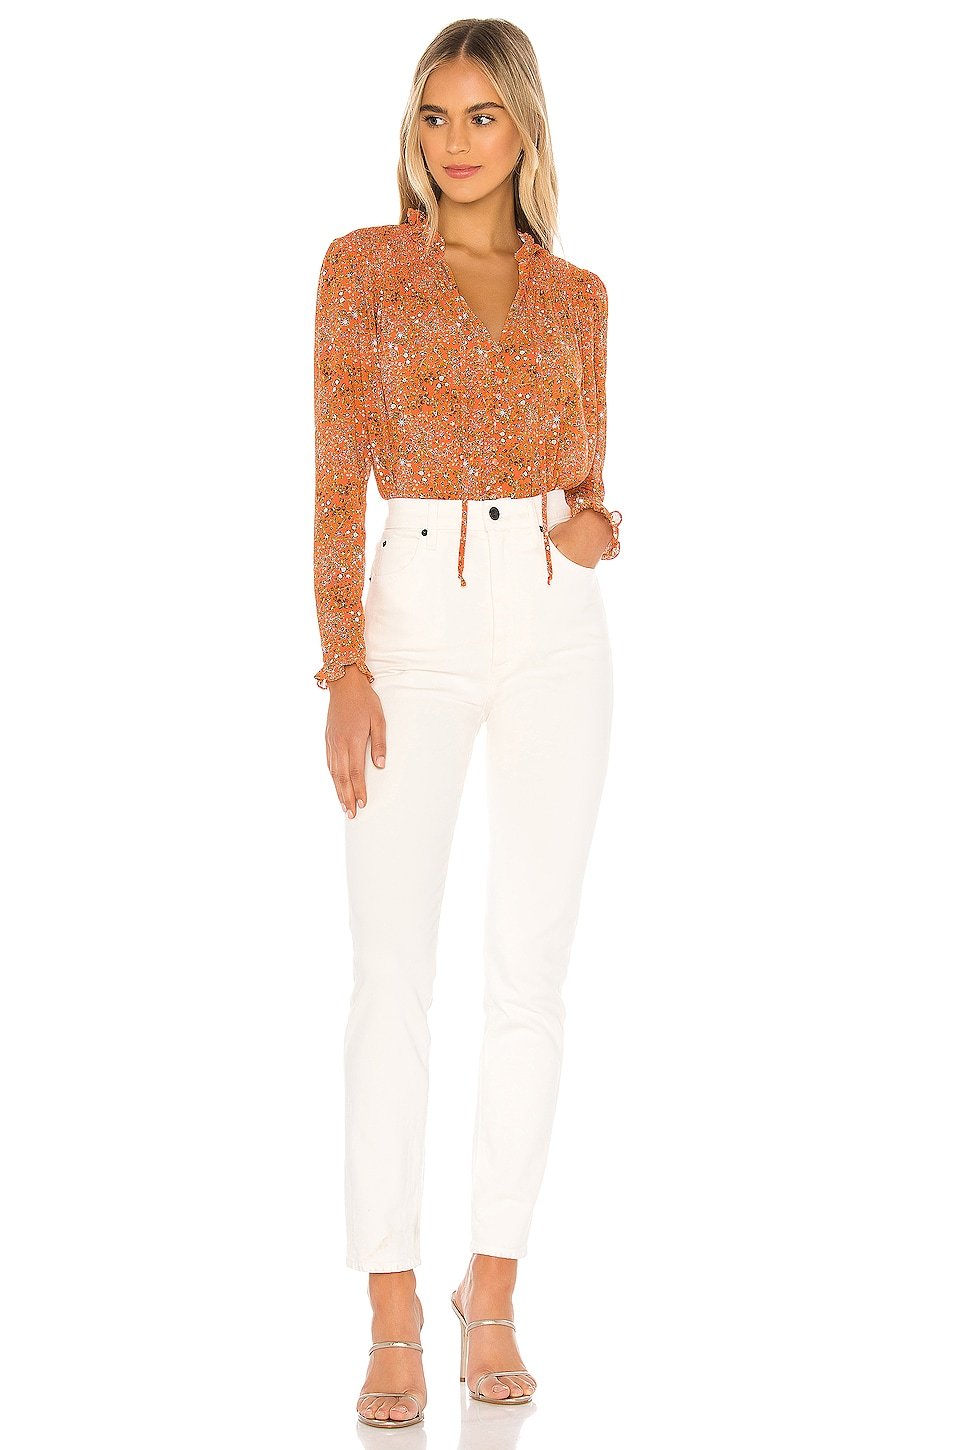 X REVOLVE Lela Blouse, view 5, click to view large image.